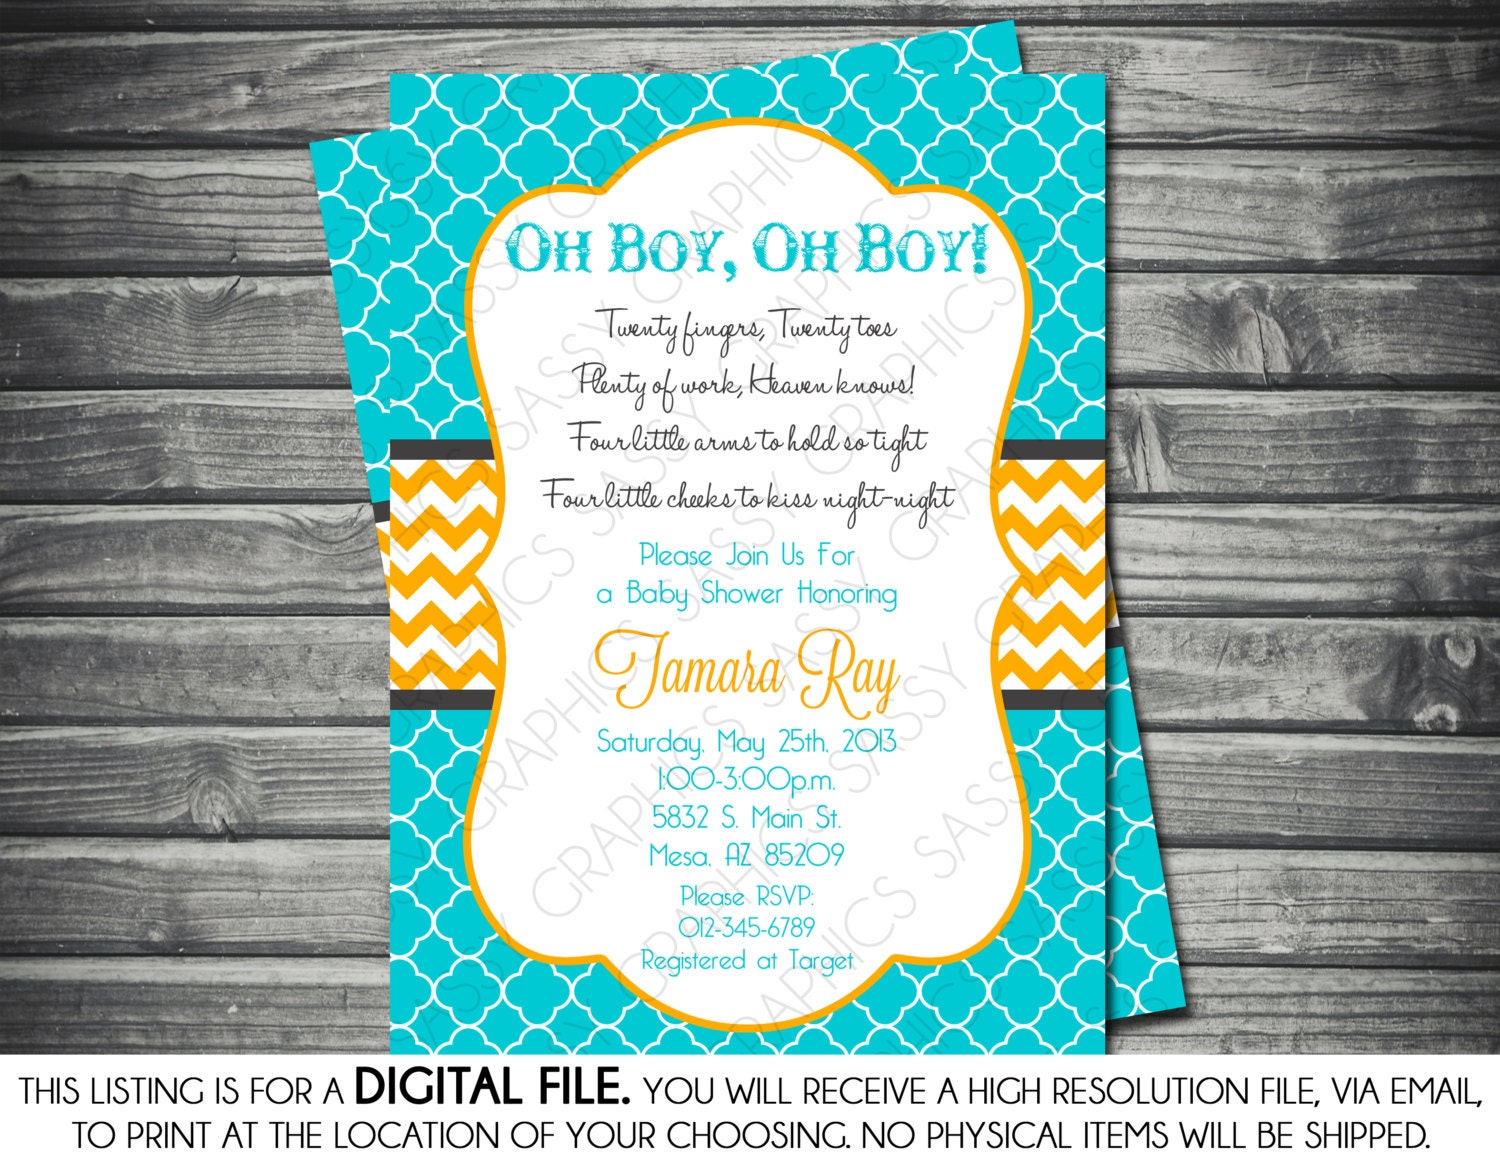 Baby Shower Invitations For Boys Ideas for awesome invitation layout